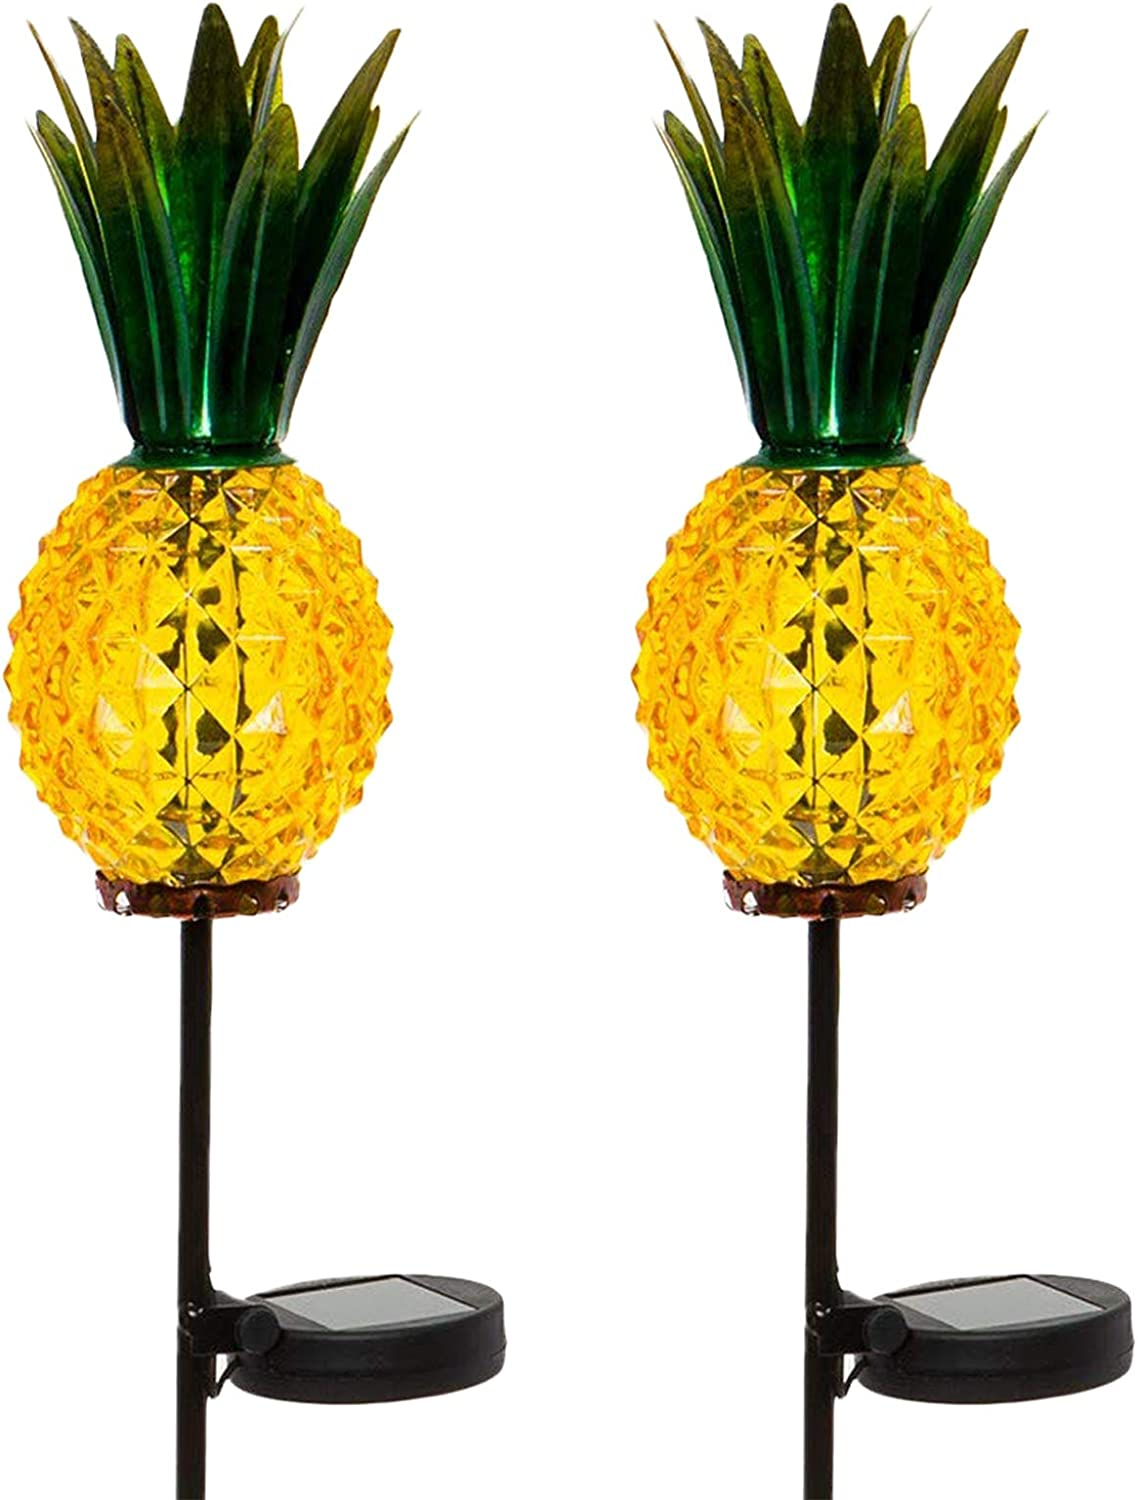 Outdoor Solar Pineapple LED Light Glass Path Stake Lights for Patio and Garden 2-Pack